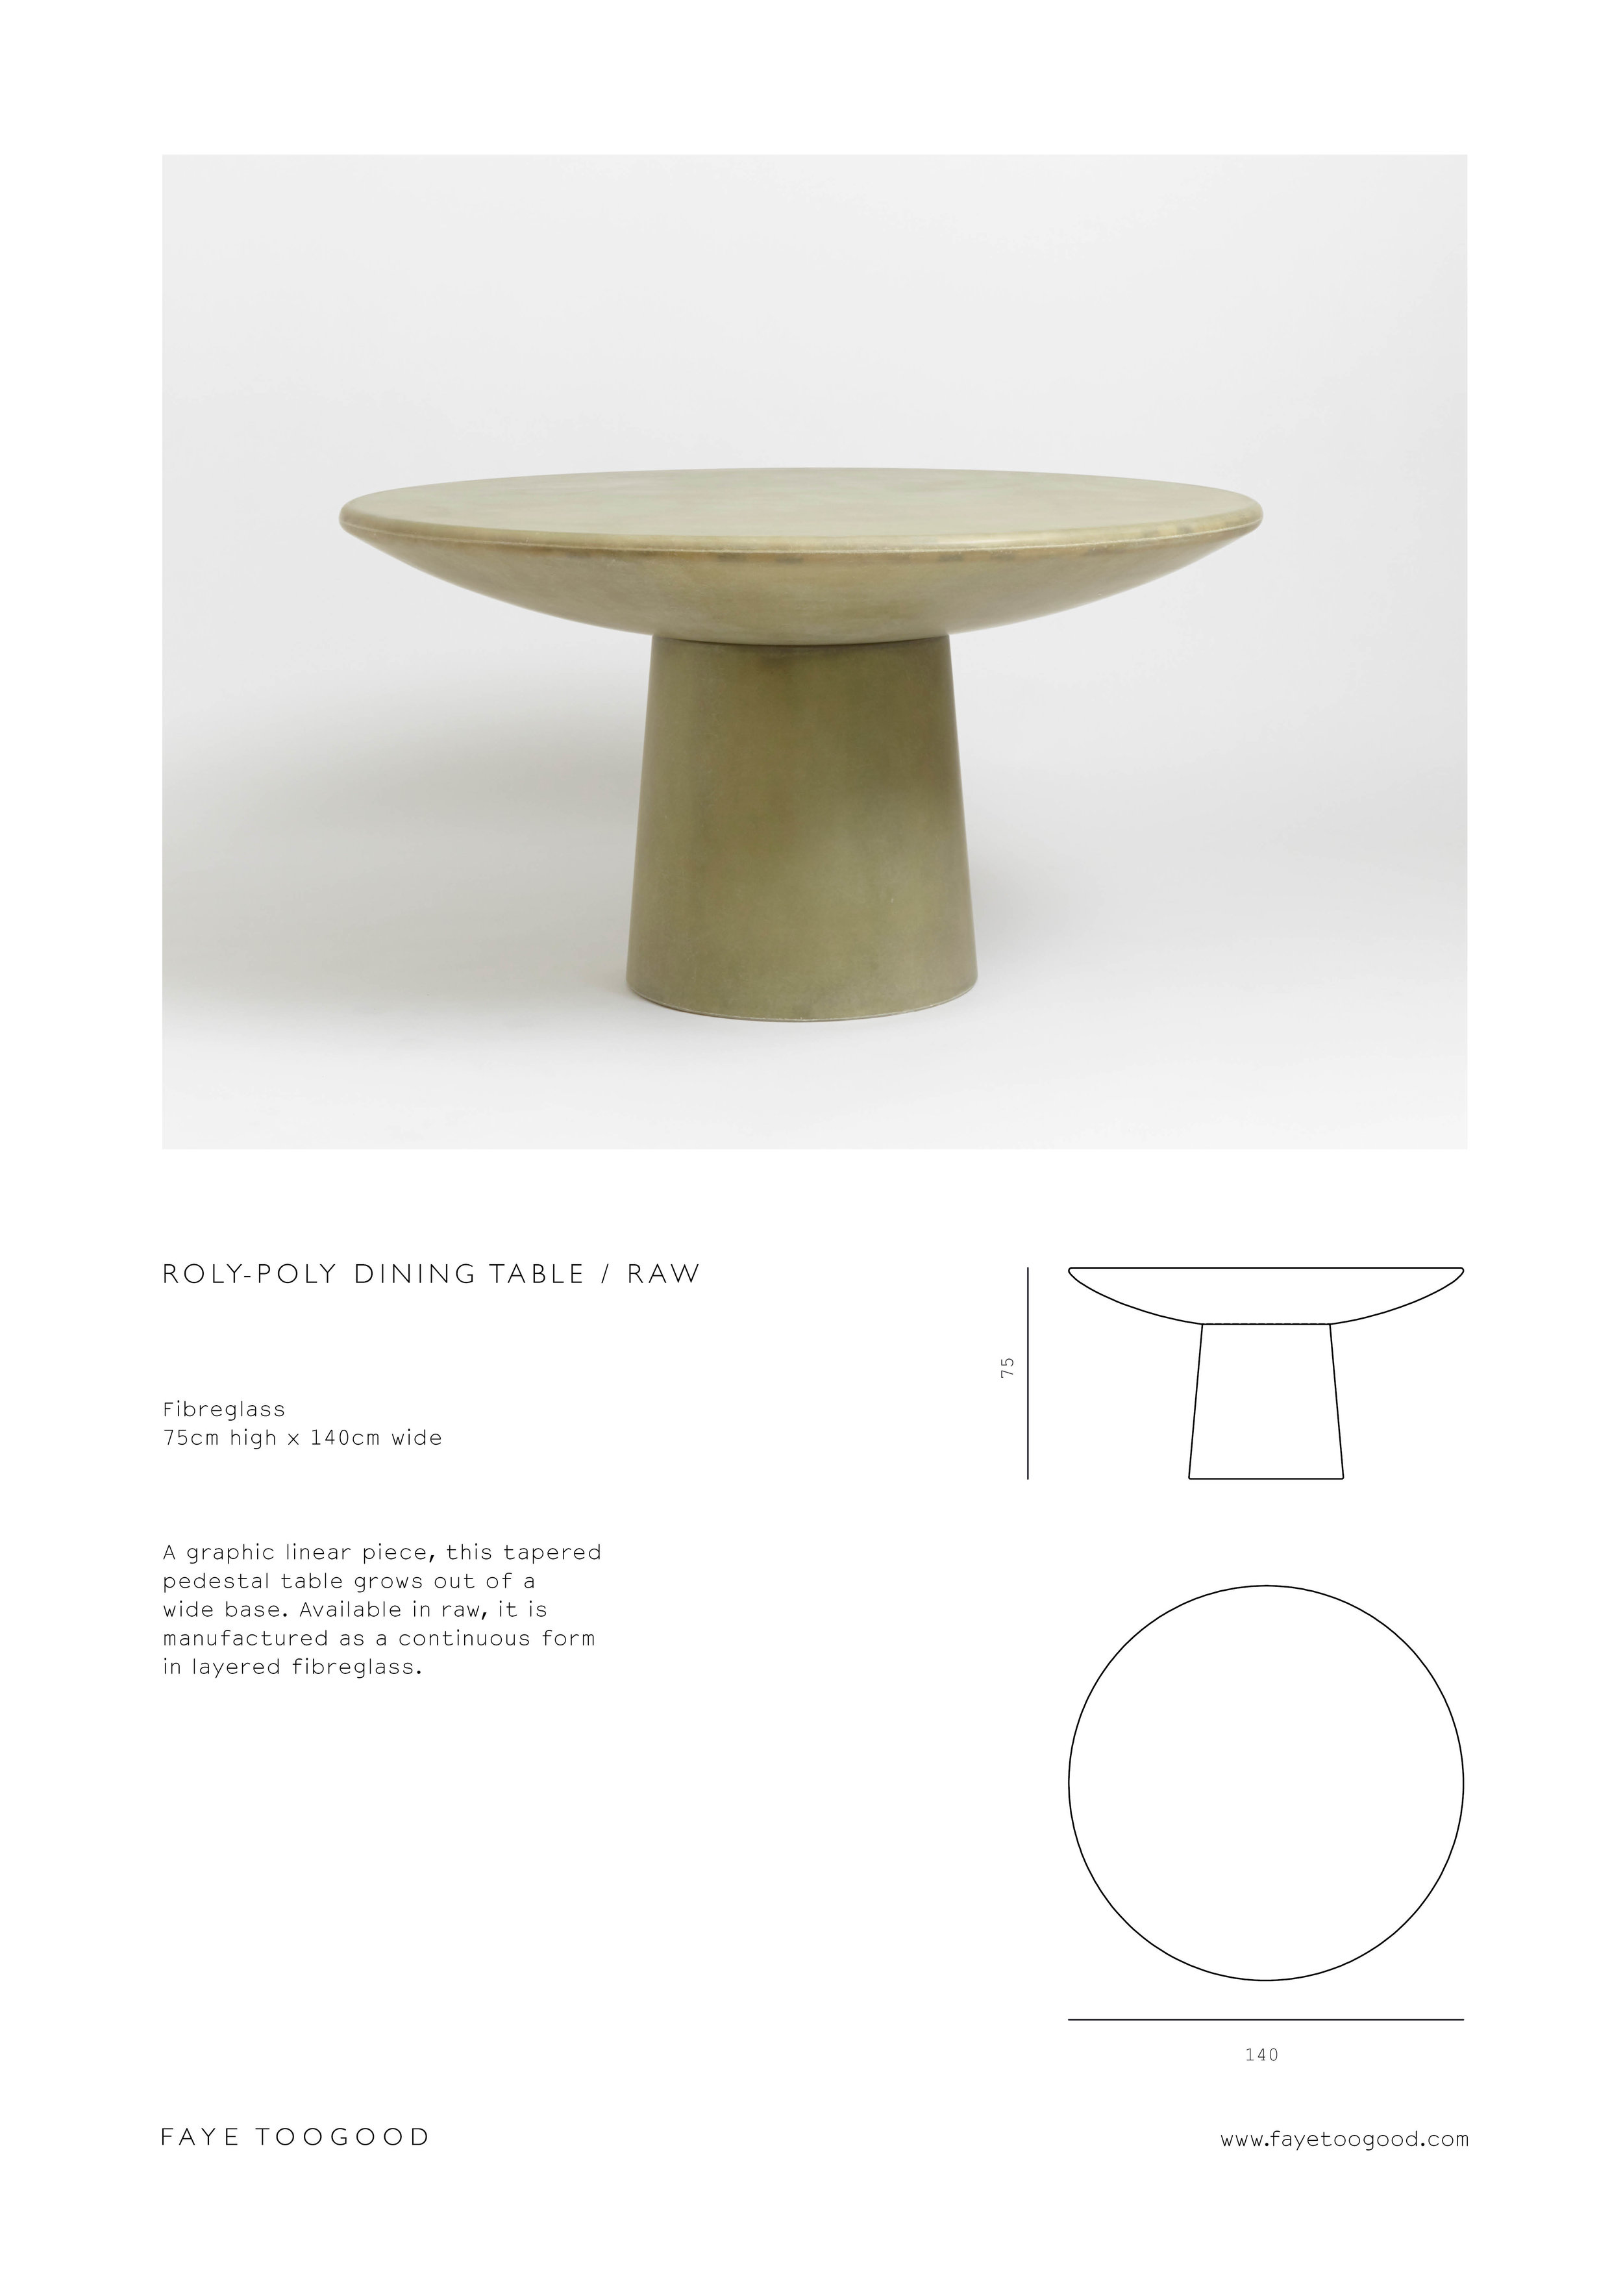 Roly Poly Dining Table RAW_specification sheet.jpg